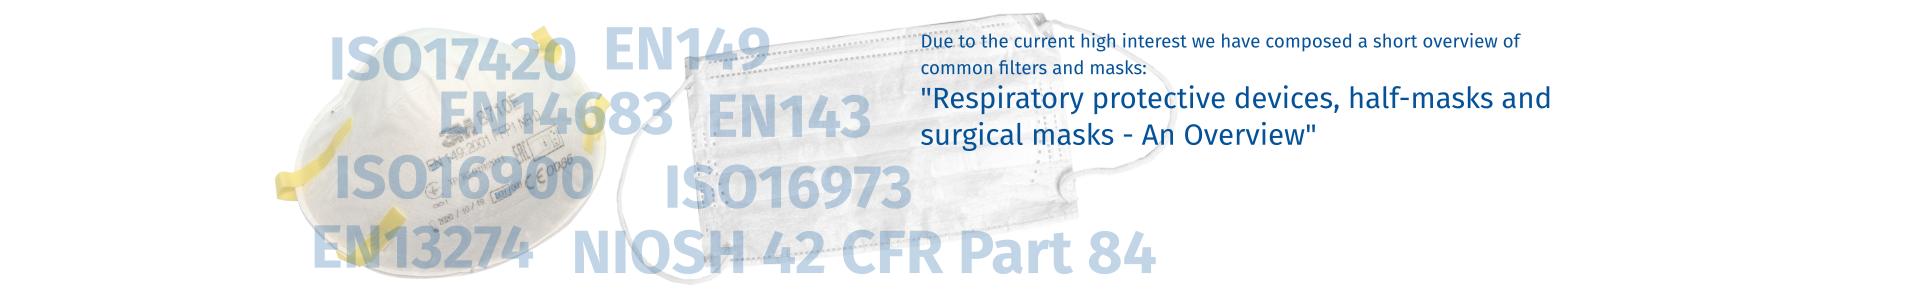 Respiratory protective devices, half-masks and surgical masks - An Overview